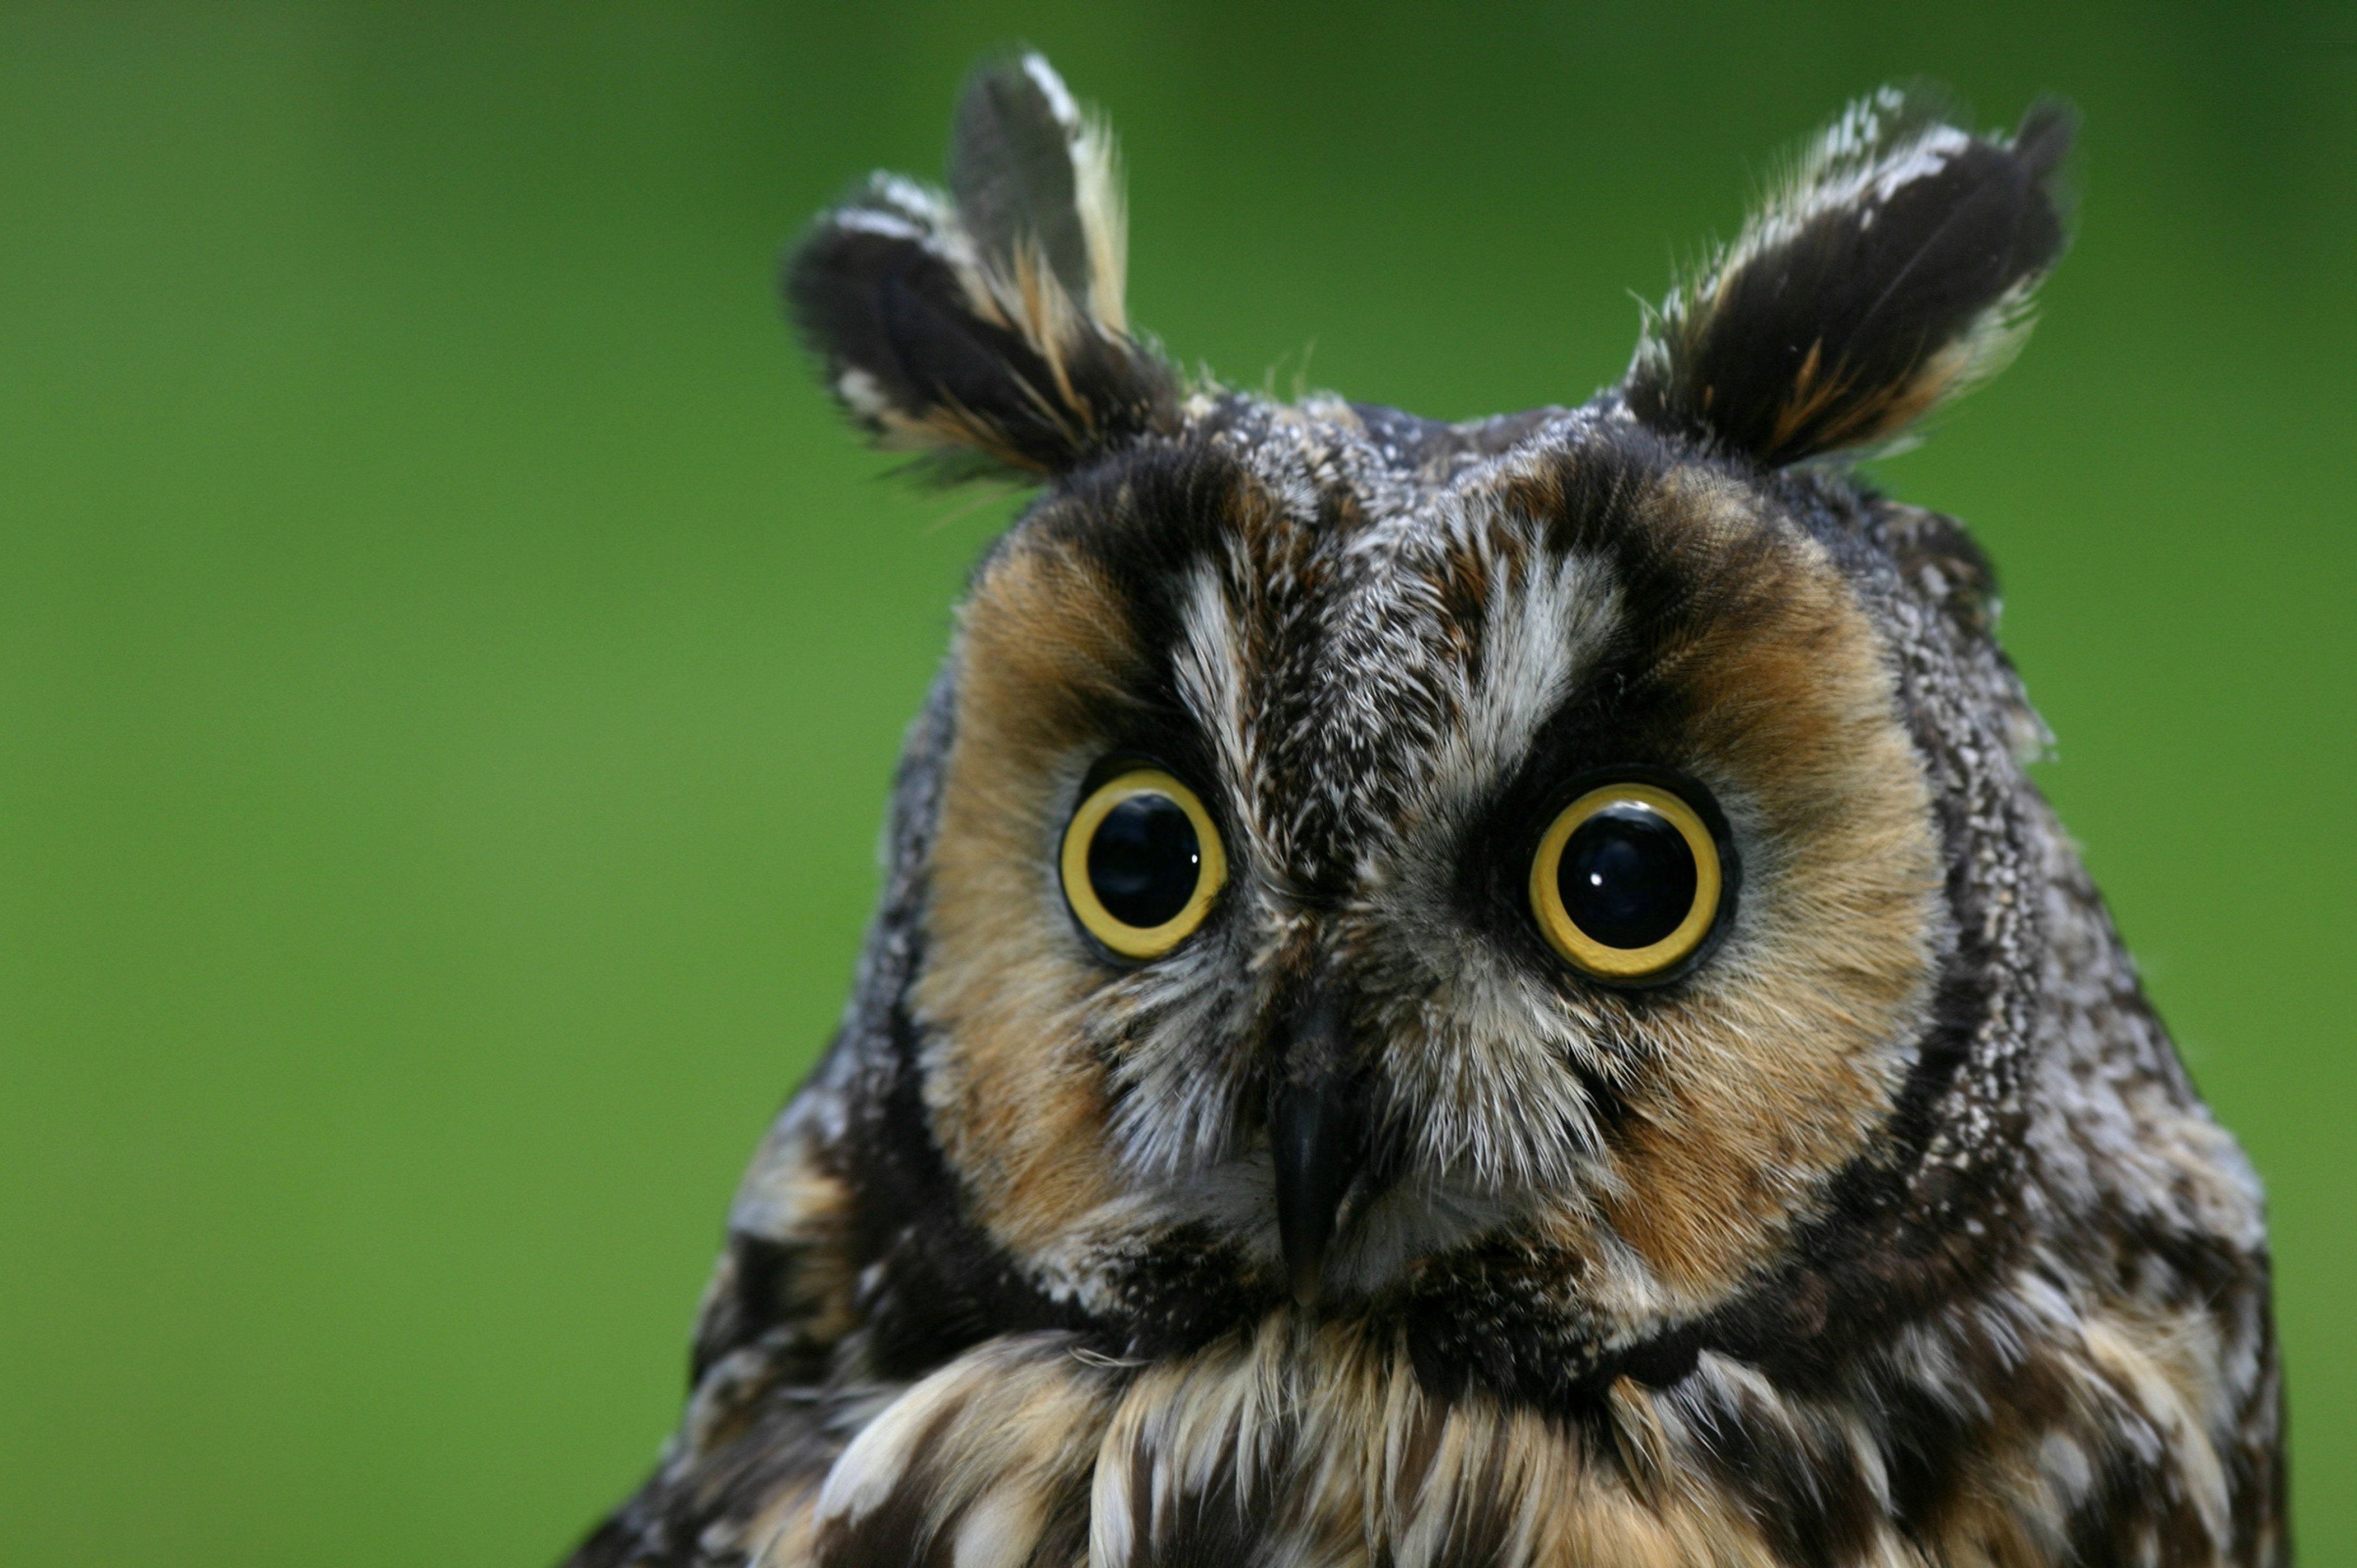 Cute Wallpaper In Twitter Wallpaper Owl Eagle Owl Funny Nature Plumy Animals 4075